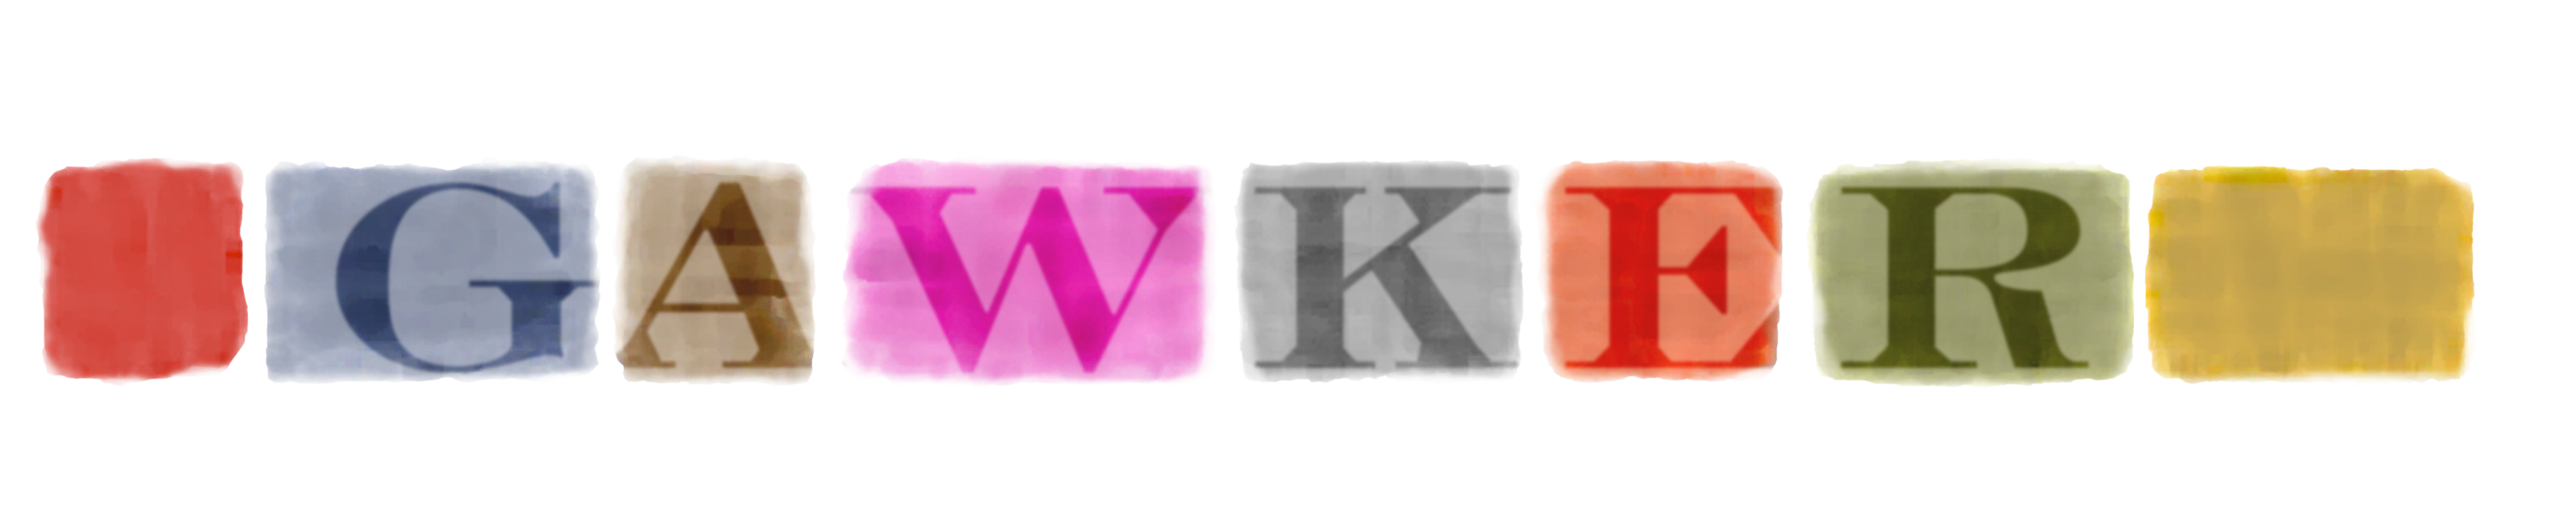 Gawker Media - from Gizmodo to Kinja / EU-